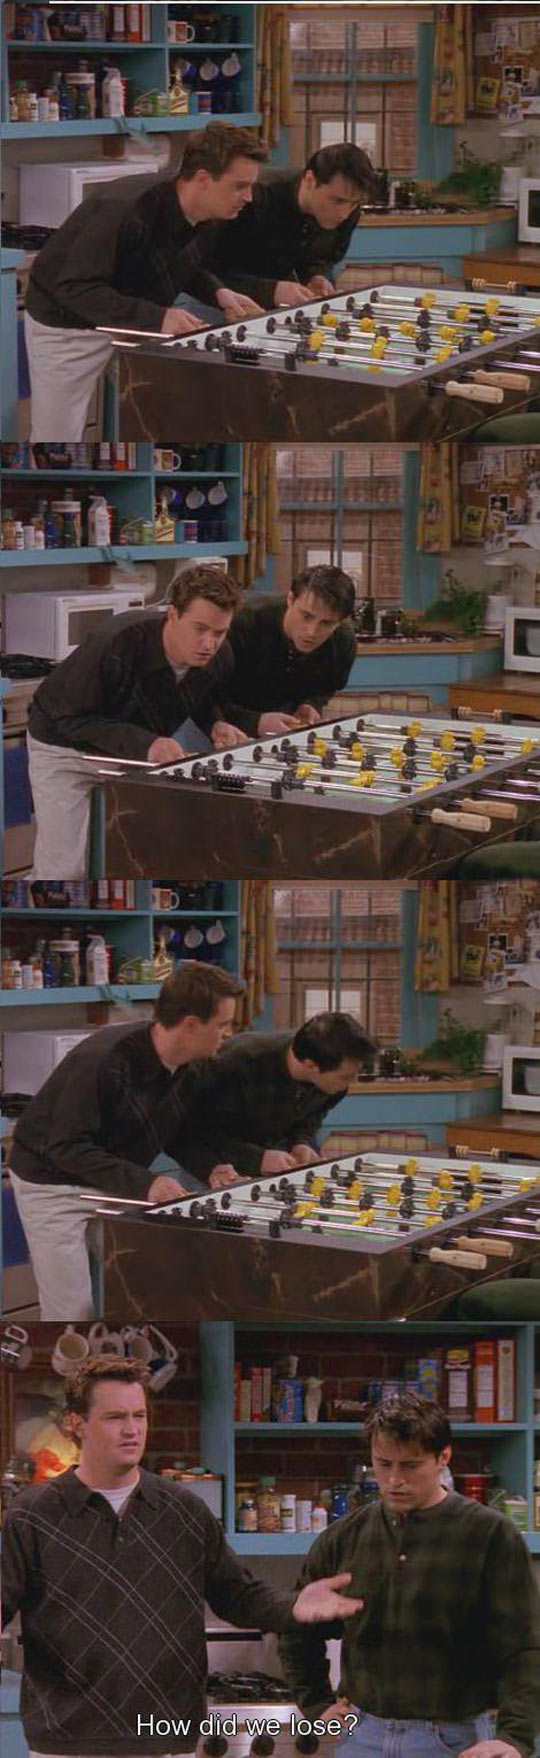 Playing foosball…